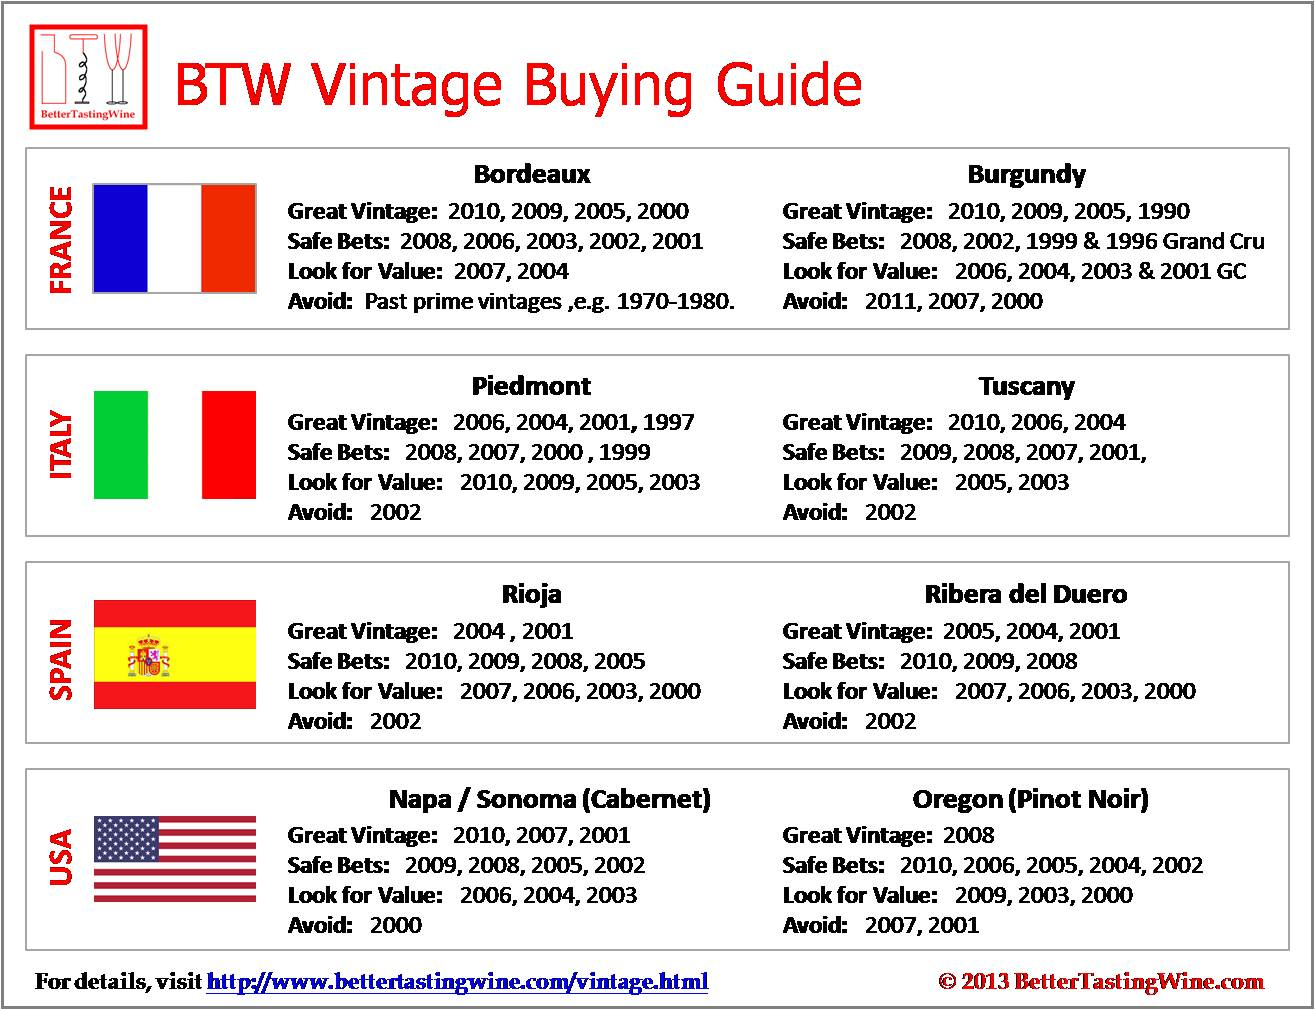 Vintage Buying Guide